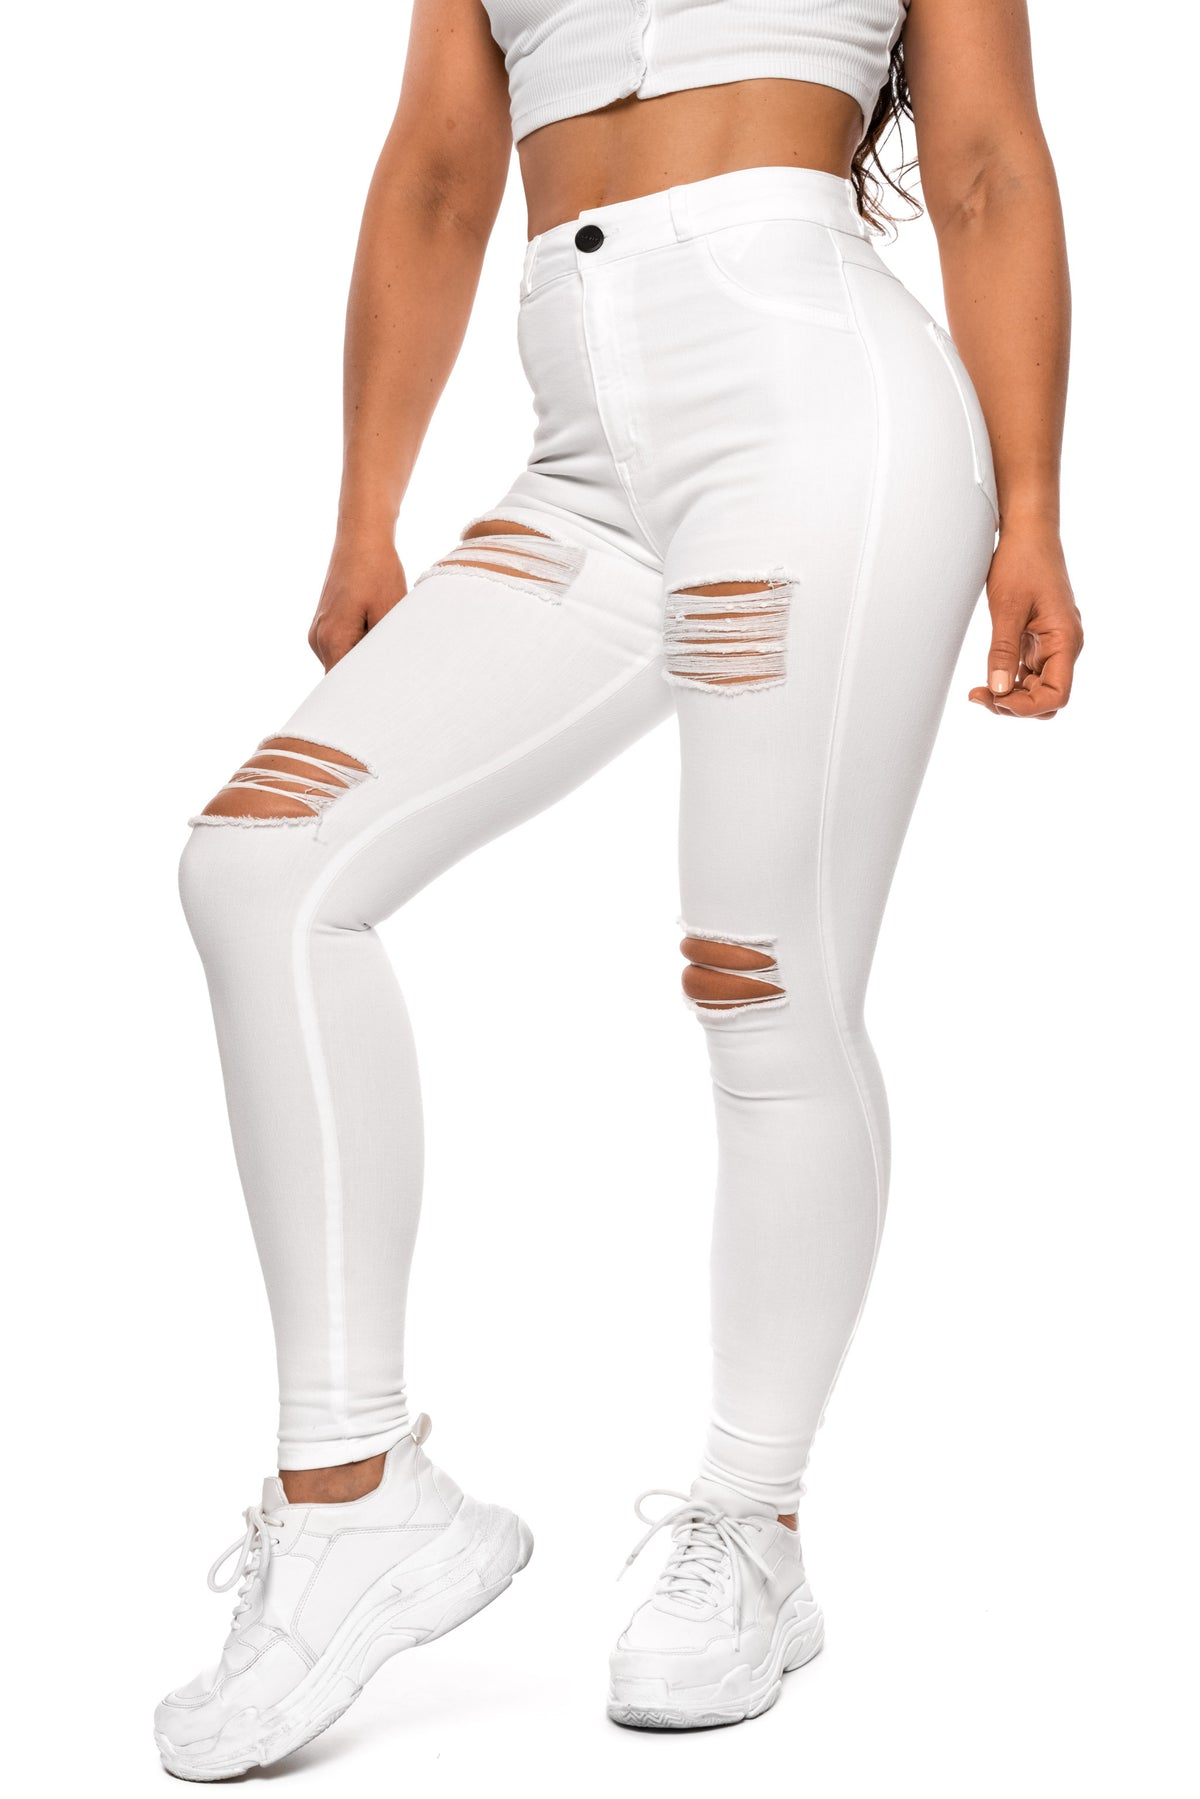 Womens Regular Pastel 4 Hole Ripped High Waisted Fitjeans - White